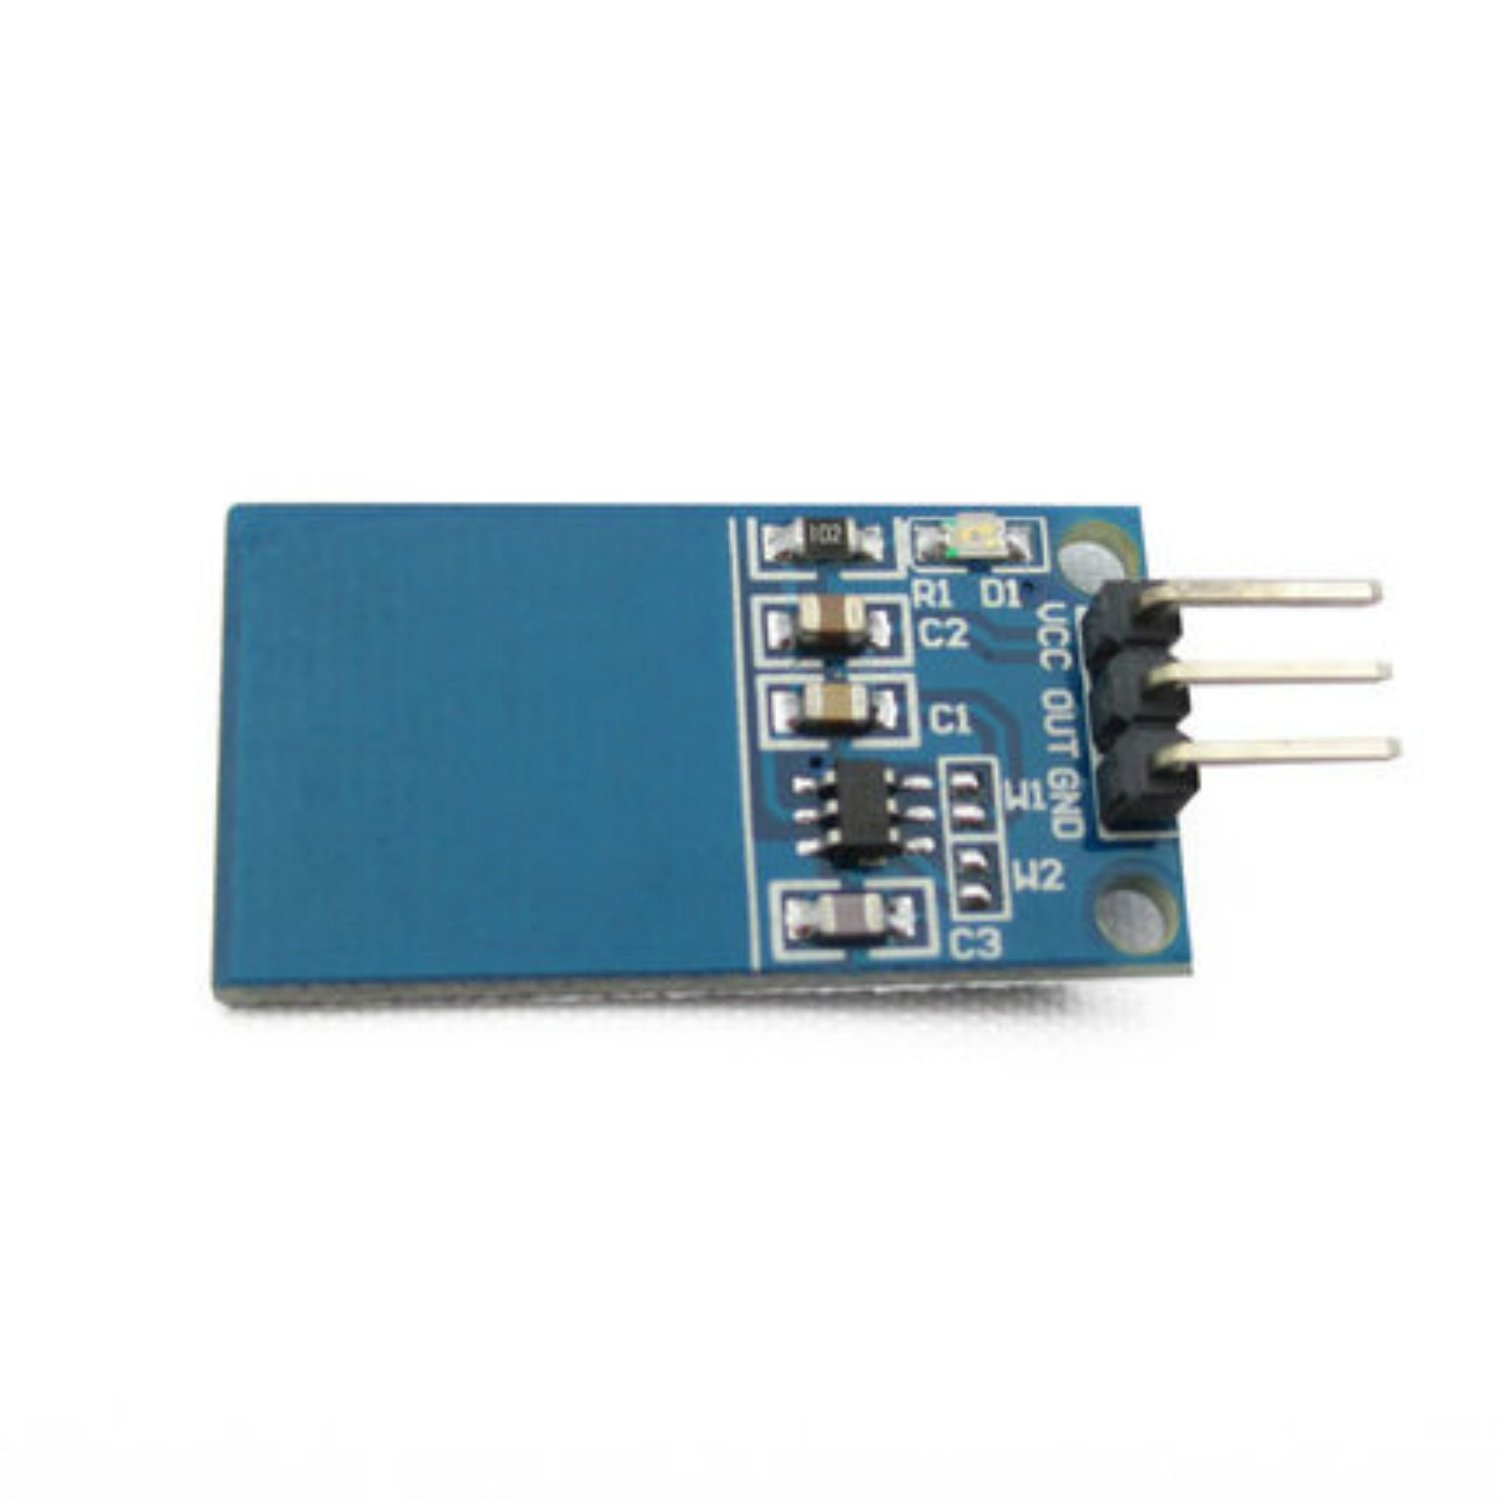 GUWANJI TTP223B Digital Touch Sensor Capacitive Touch Switch Module for Arduino Raspberr